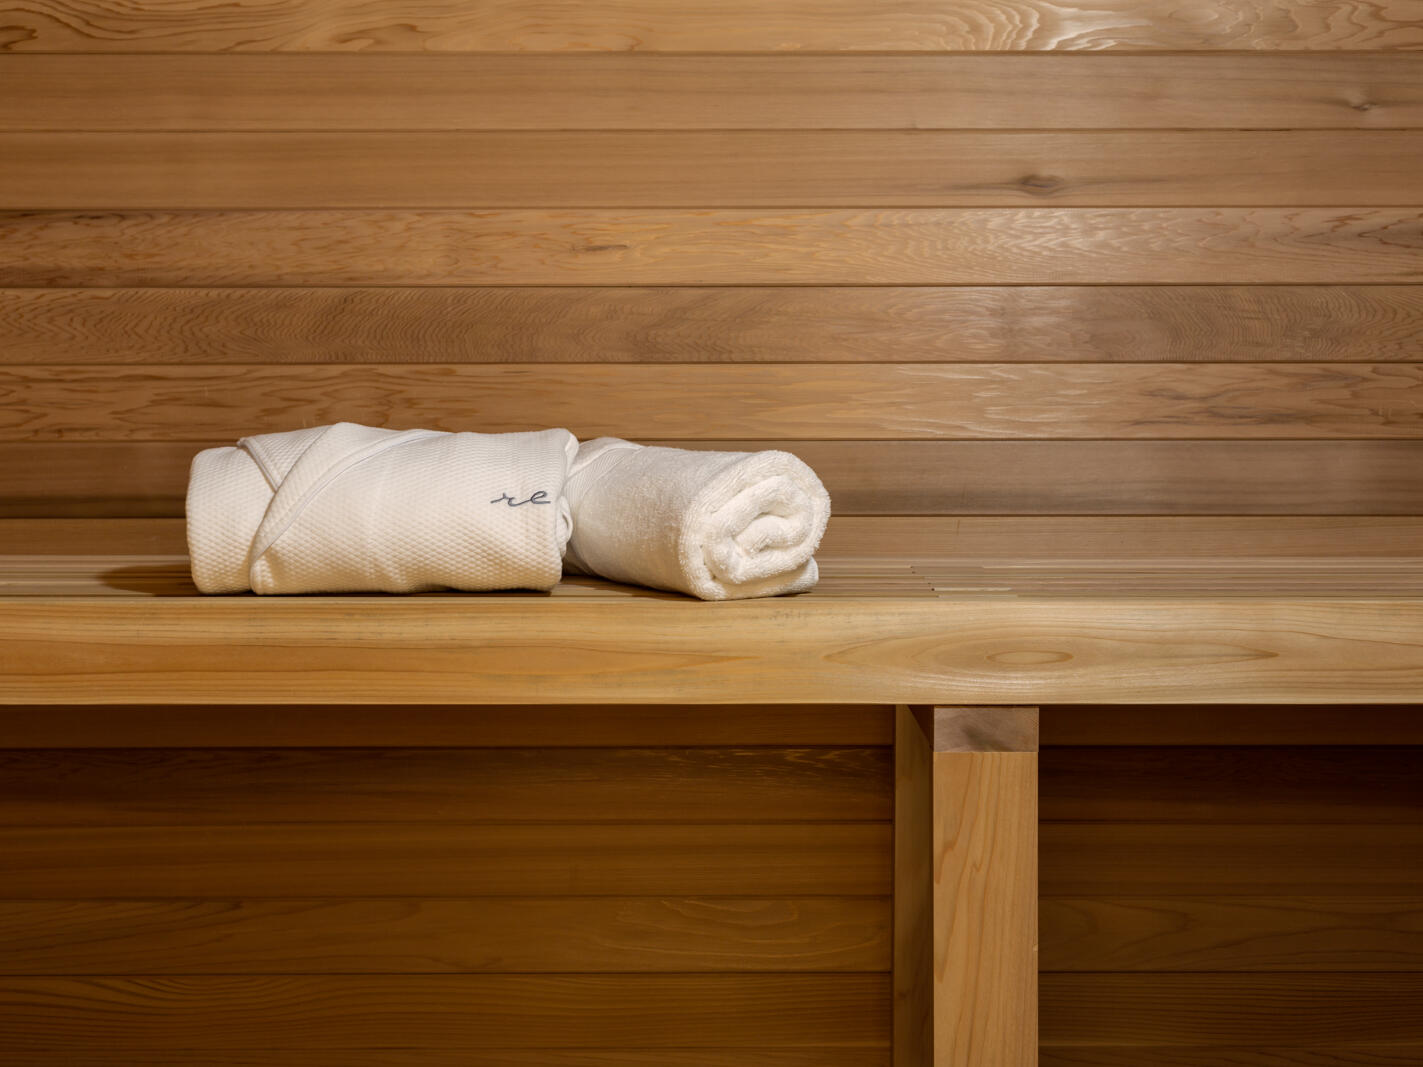 robe and towel folded on sauna bench